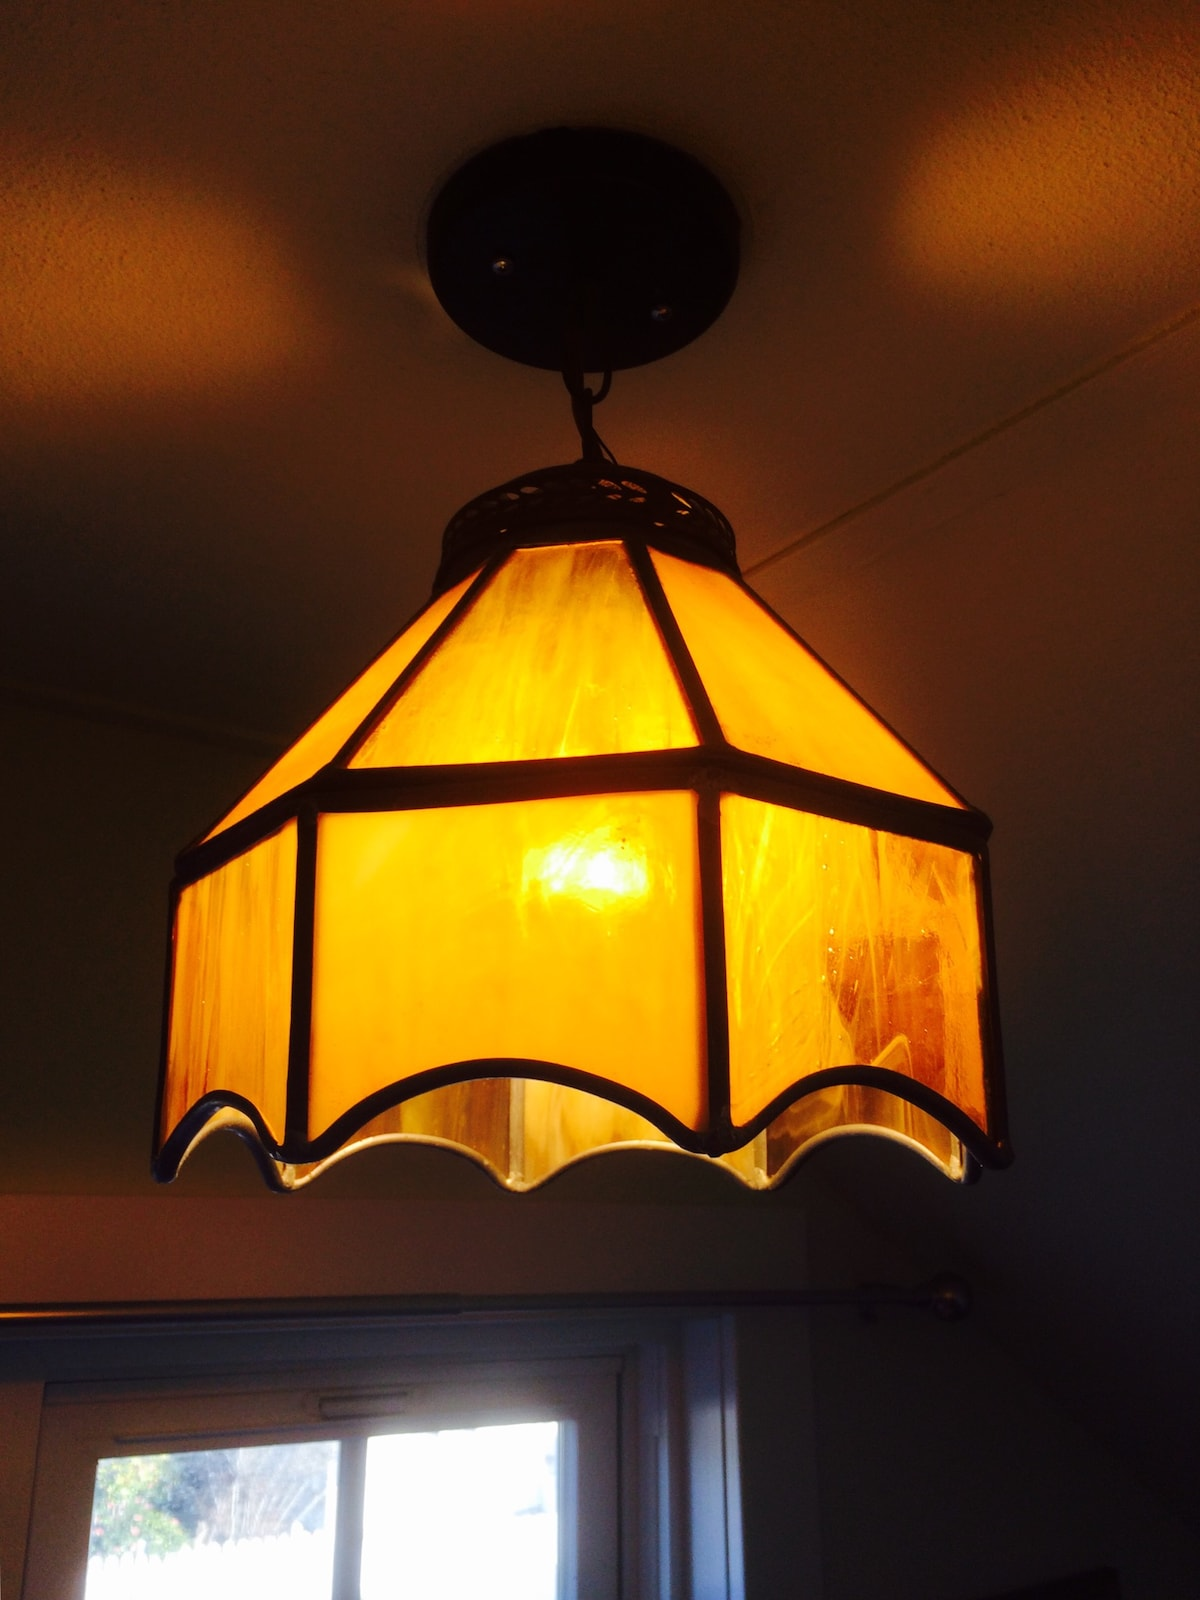 A Stained Glass lamp over the desk.